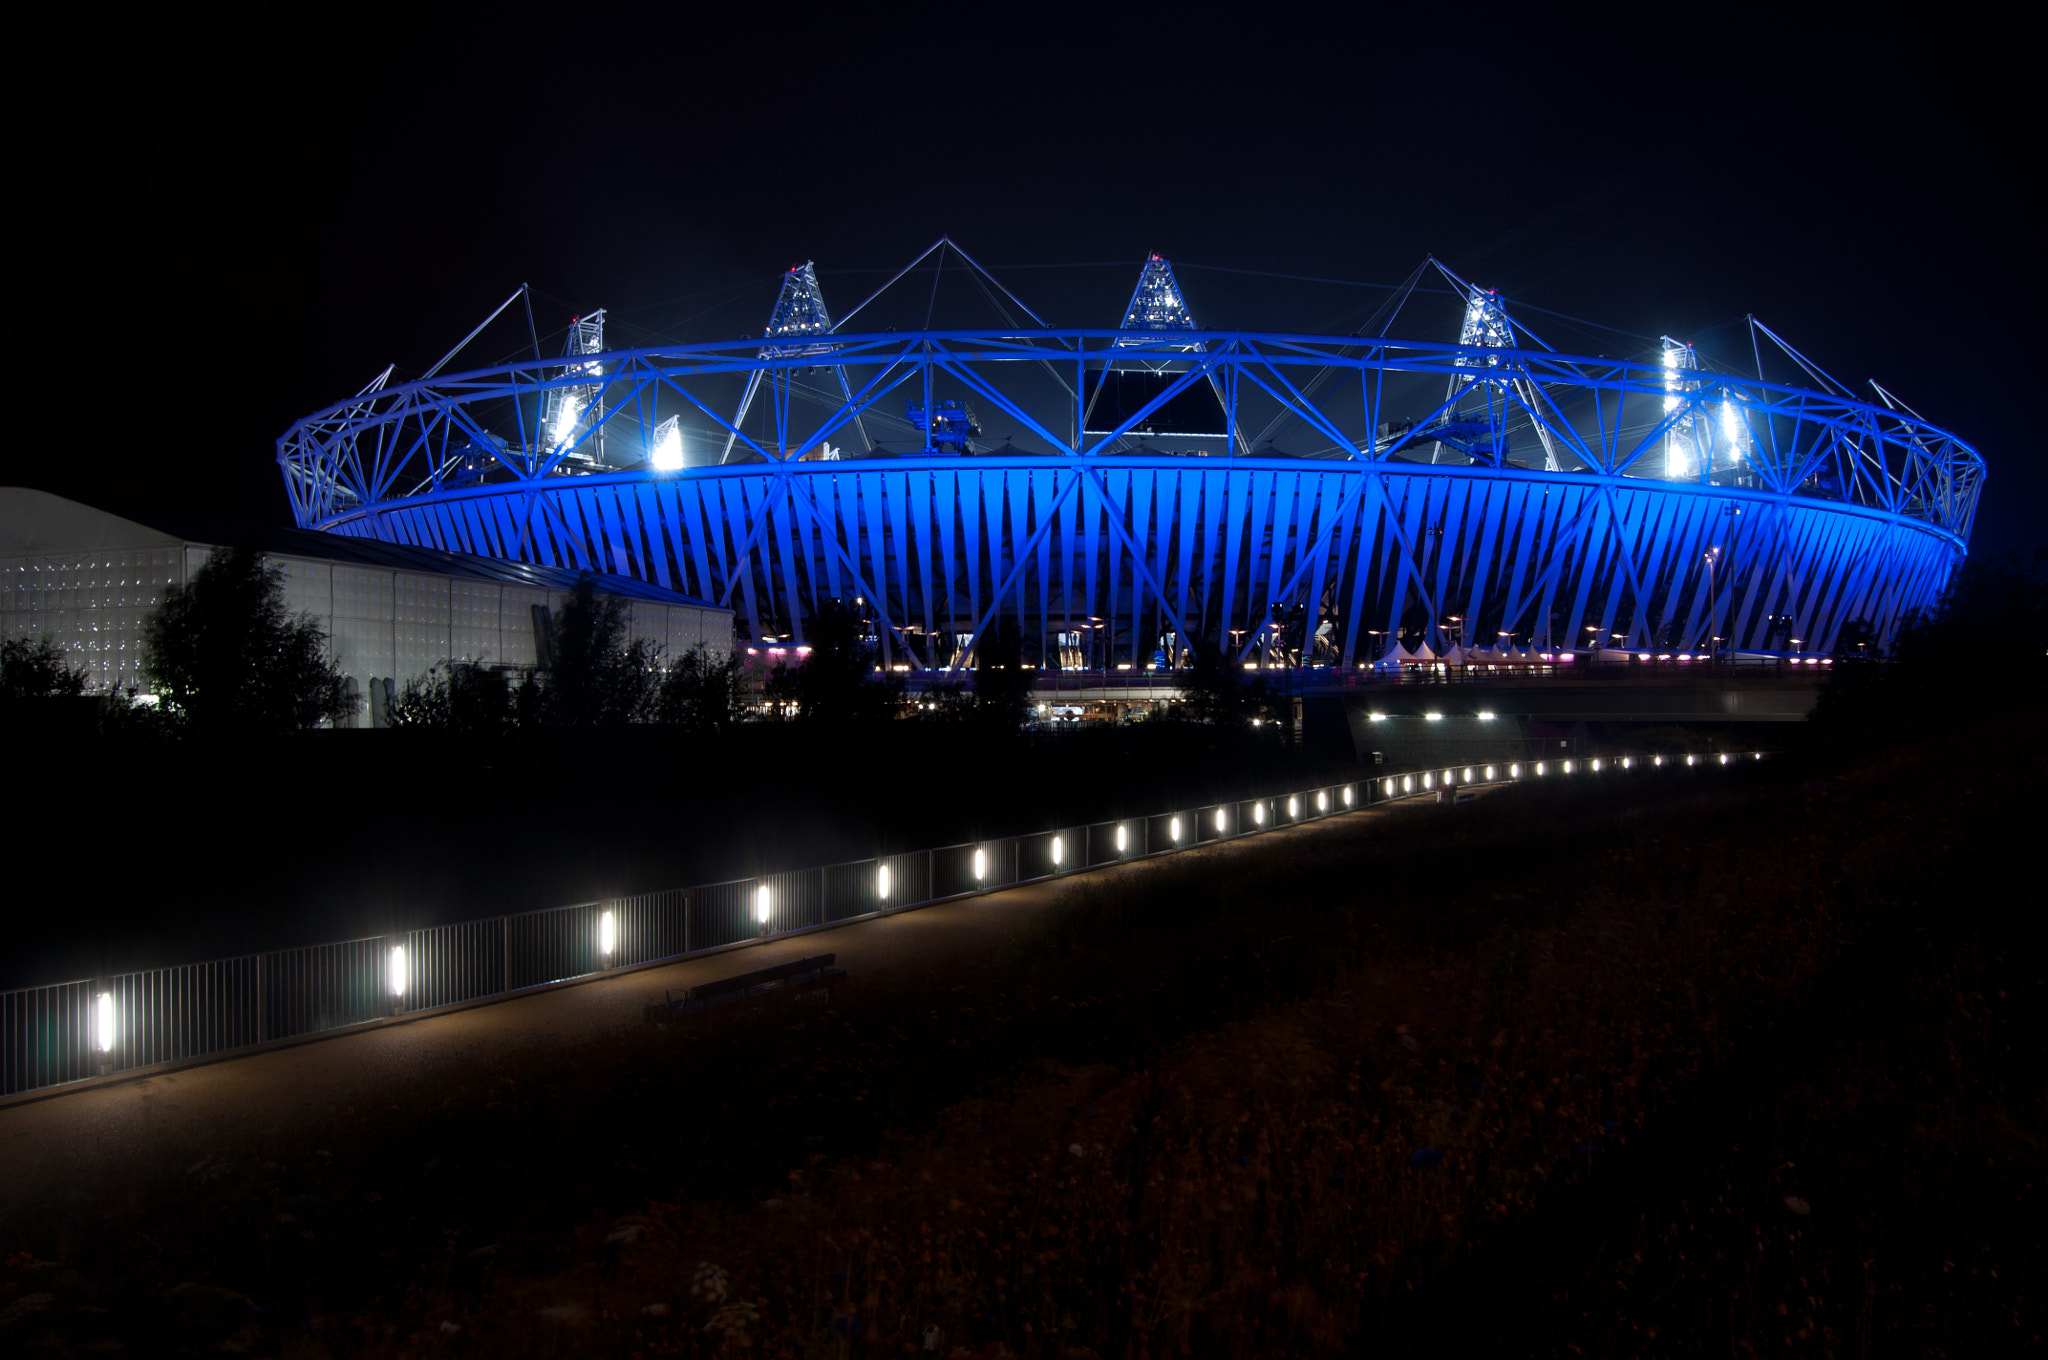 Photograph Olympic Stadium at Night by Megan Trace on 500px